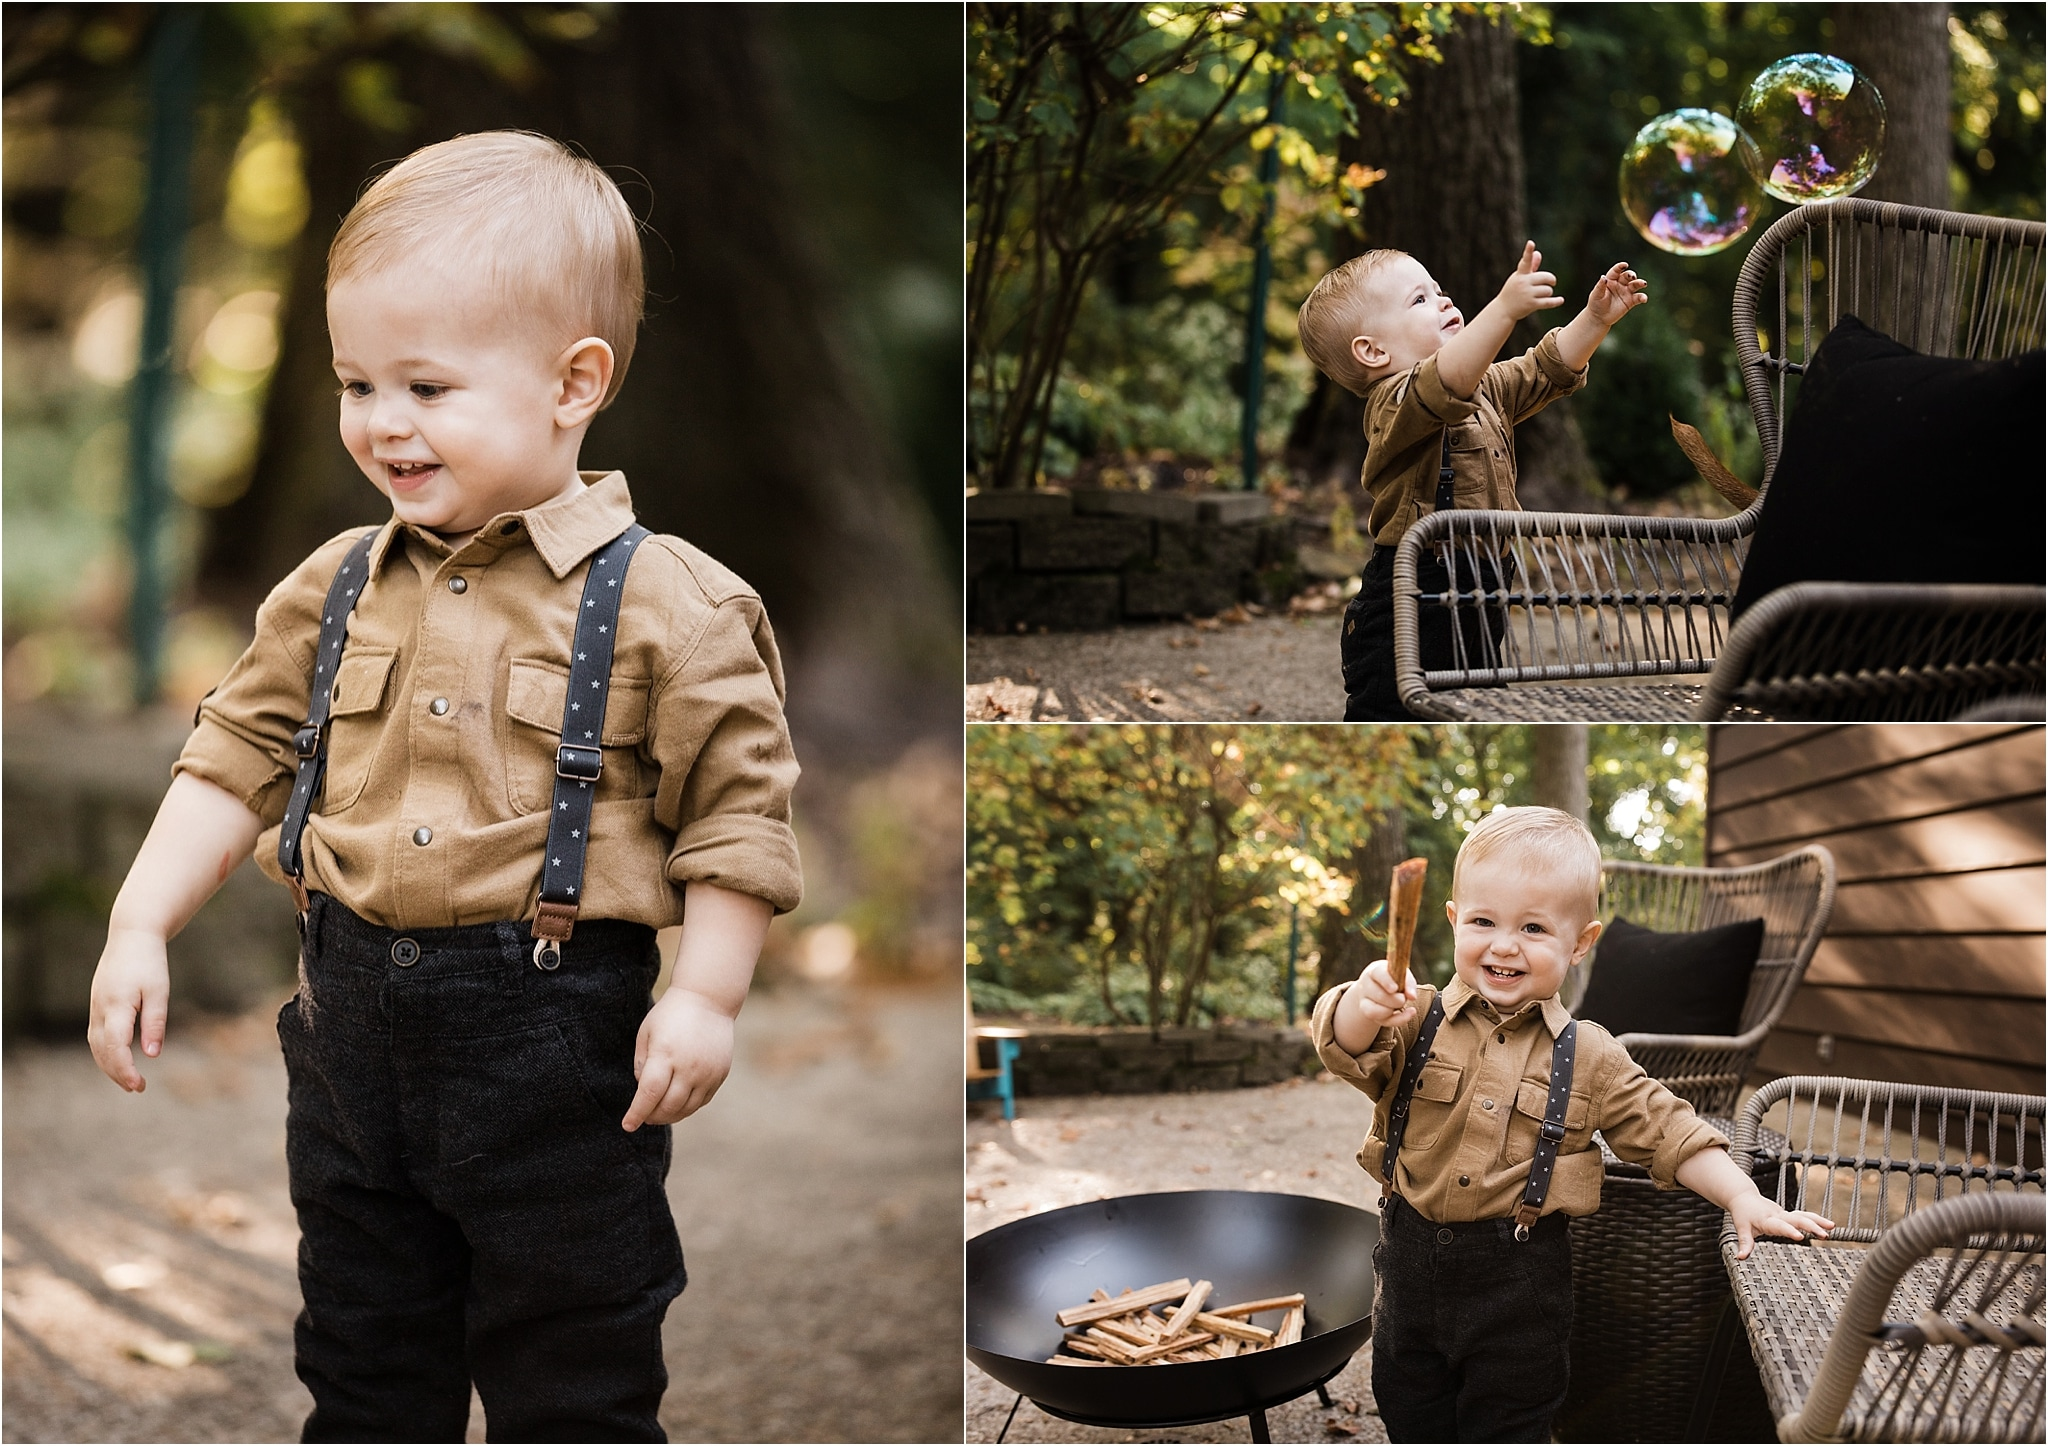 photos of one year old boy playing in the yard